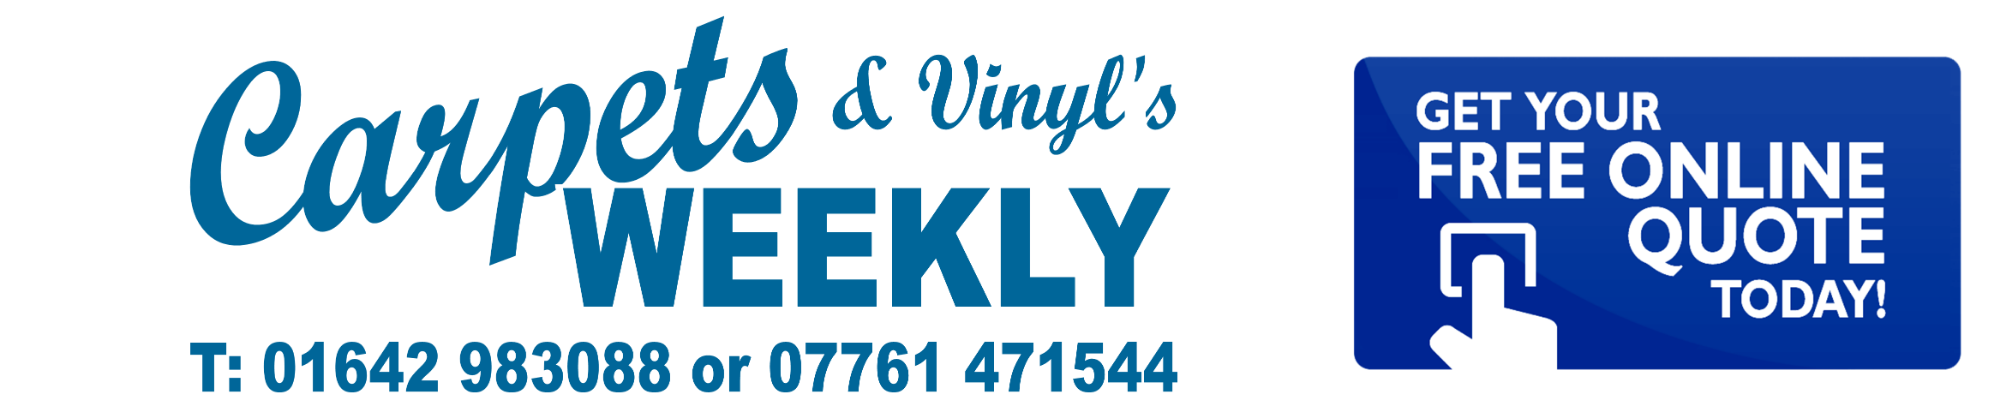 Free online quote today from Carpets Weekly Throughout Noth Yorkshire and the North East